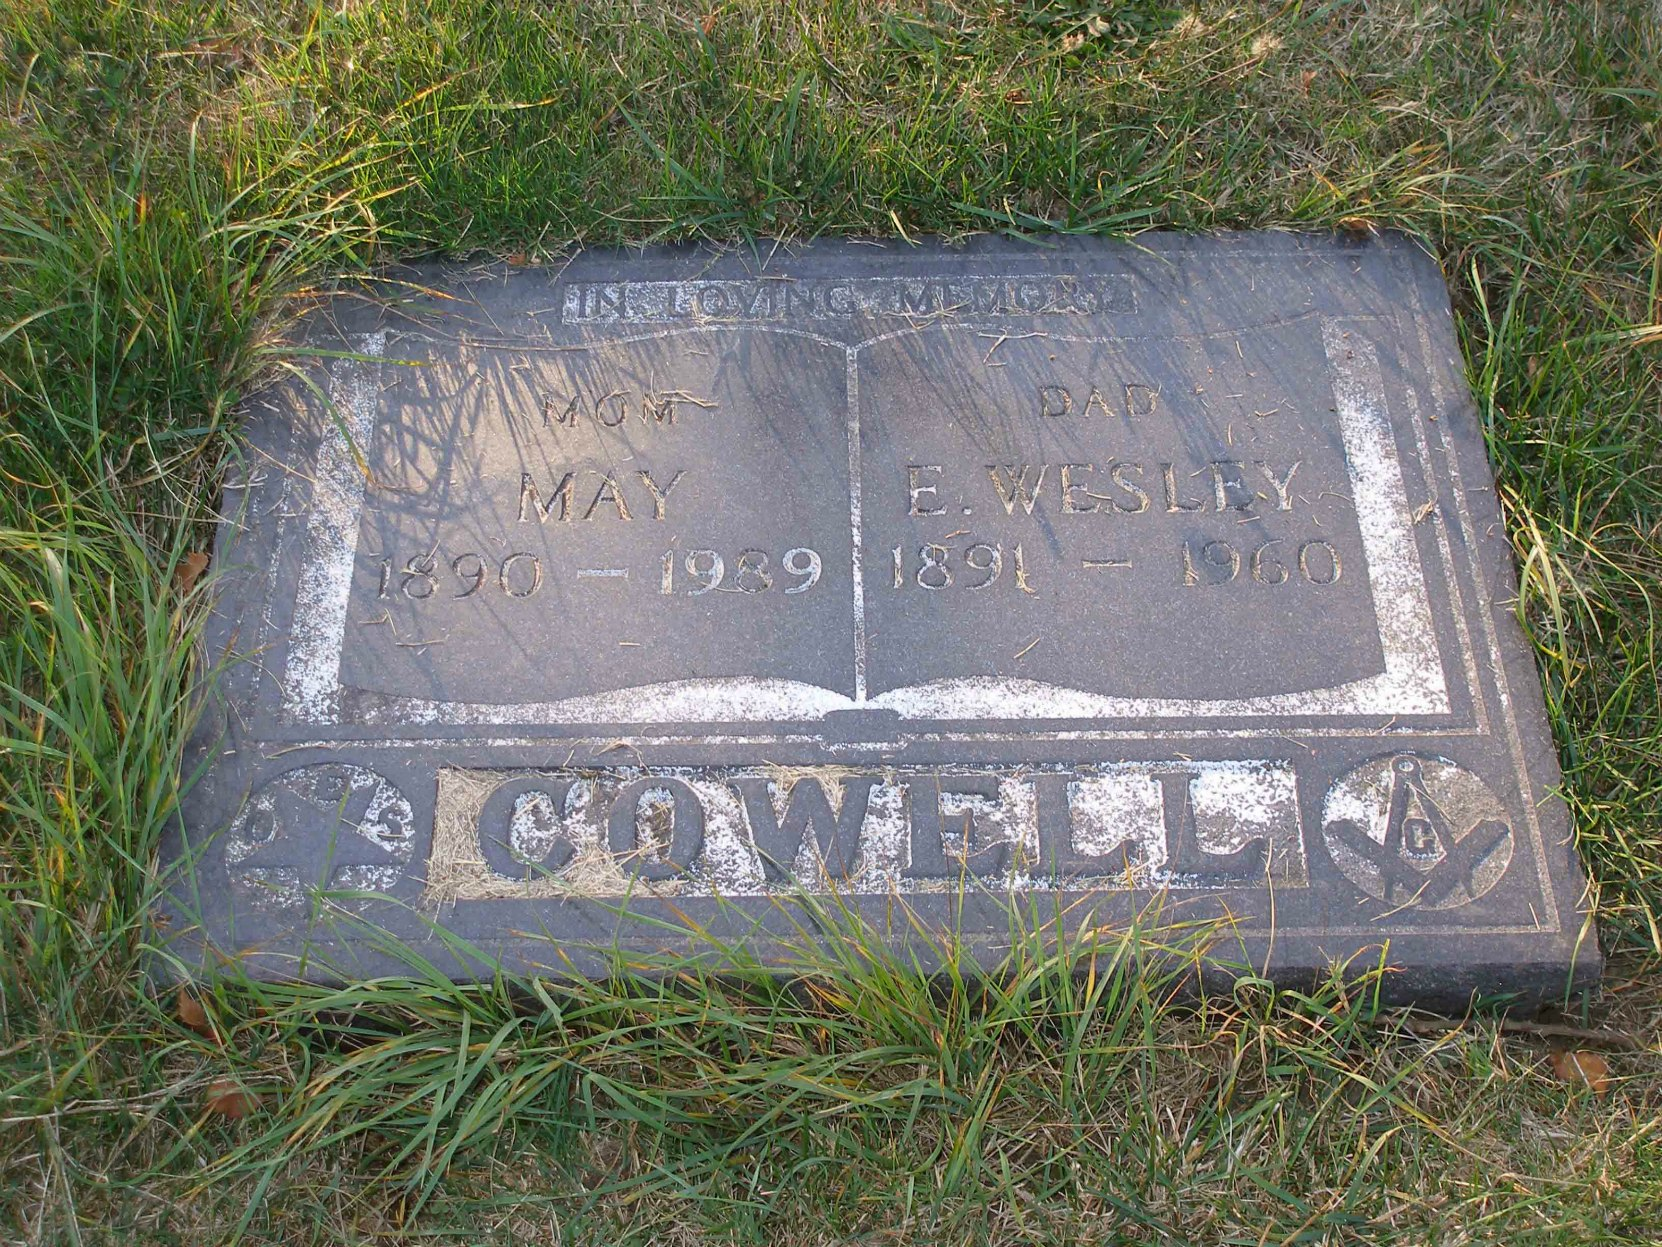 E. Wesley Cowel grave marker, Holy Trinity Anglican cemetery, North Saanich, B.C.